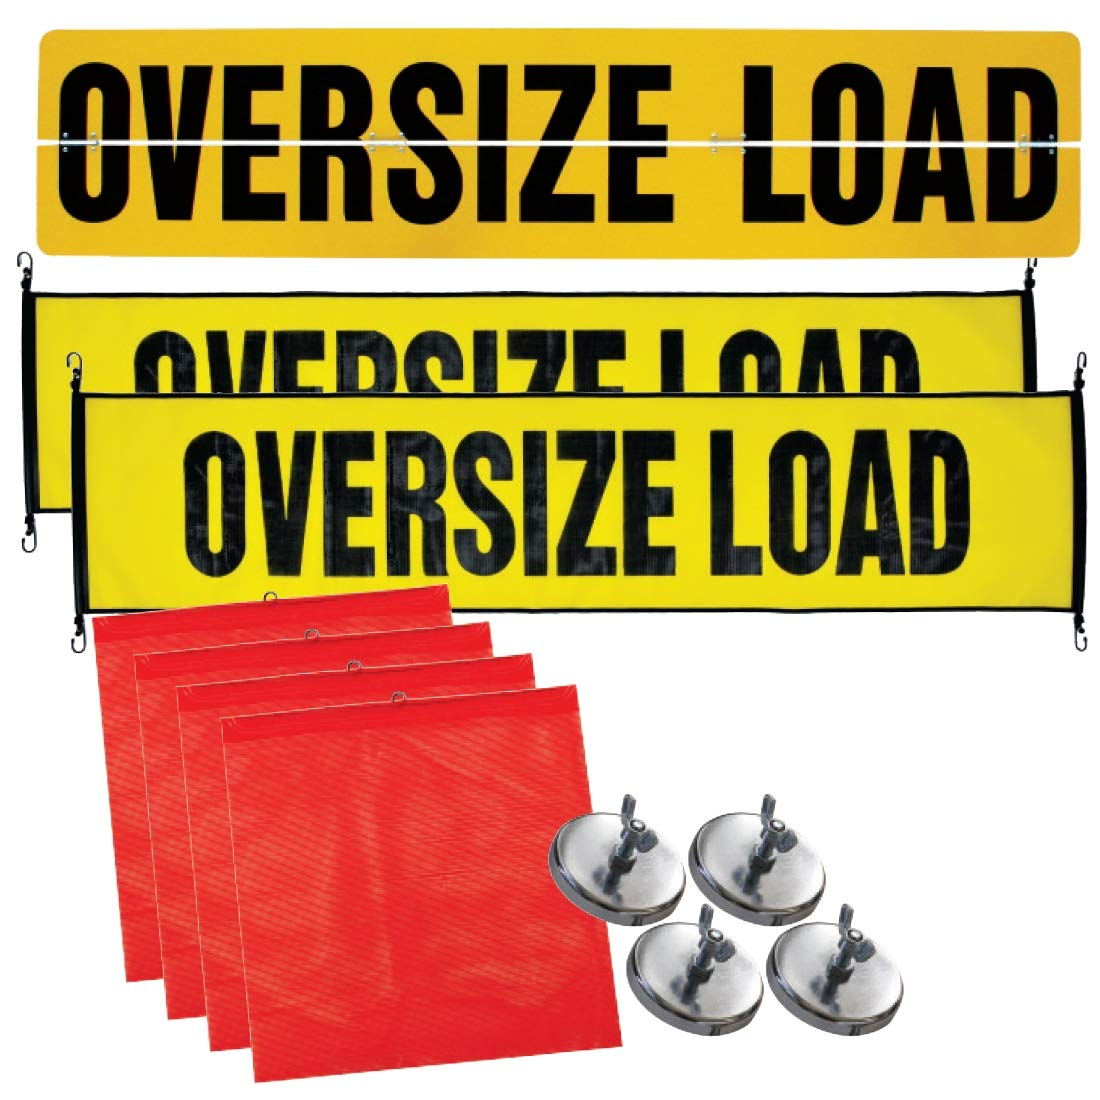 Vulcan Aluminum and Stretch Cord Oversize Load Signs, Flags, and Magnets Kit